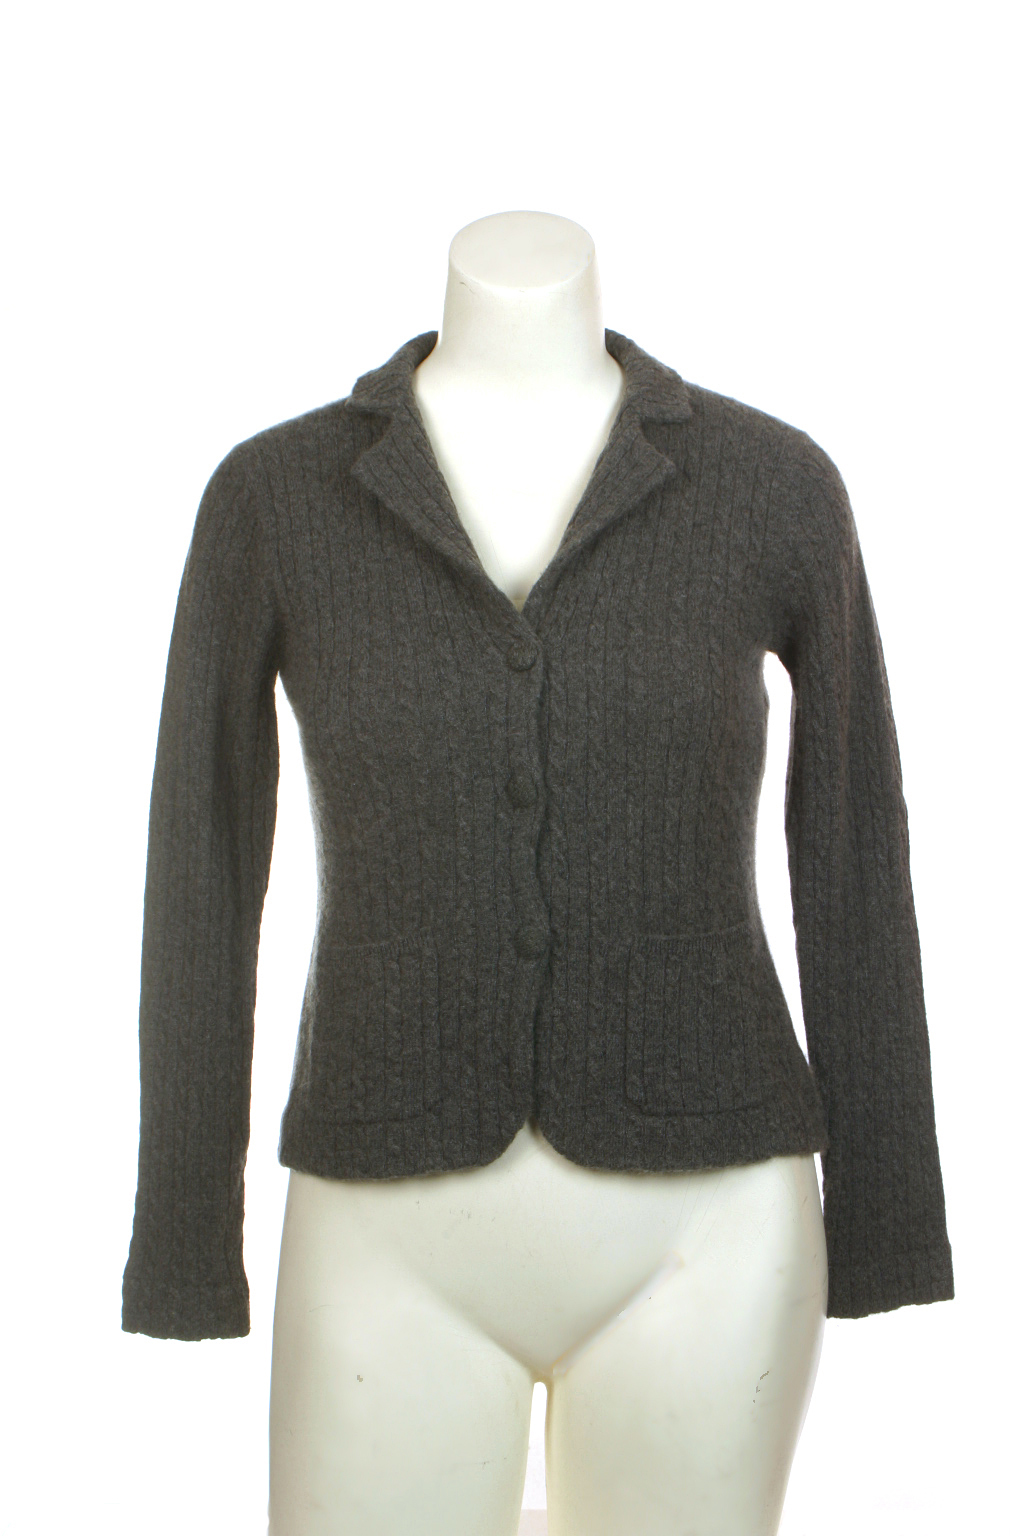 Lands End Sweaters